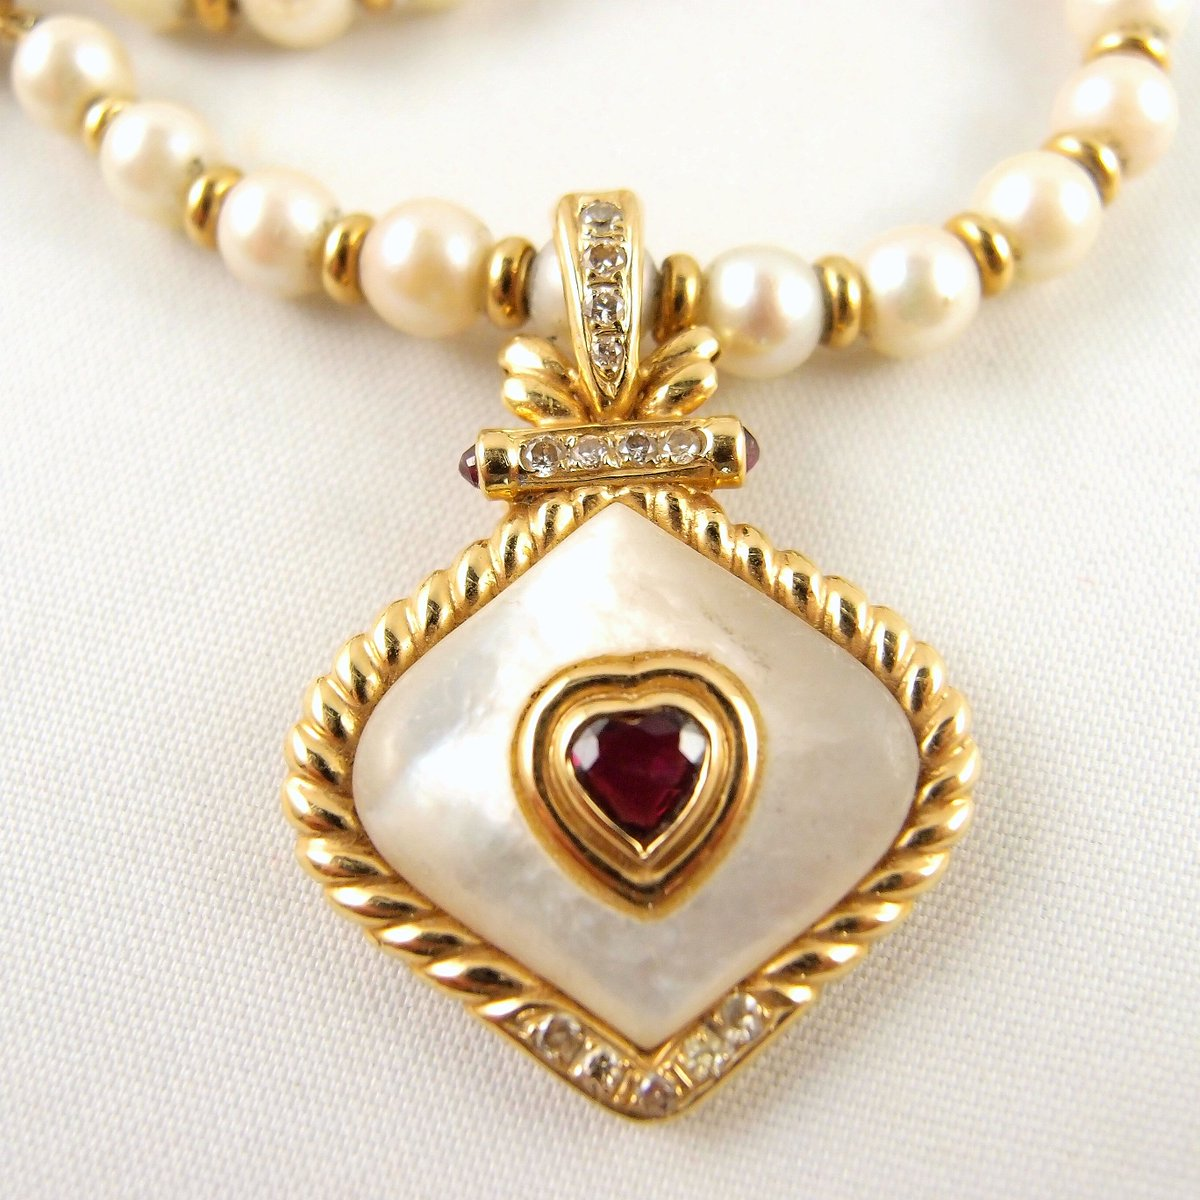 The beauty of pearls combined with gemstones and gold #pearlsofinstagram Estate #pearlnecklace with alternating #18Ksolidgold beads #Removablependant #Rubypendant and #diamondpendant http://ow.ly/1bzh30oTdQM pic.twitter.com/713ioHcSwQ